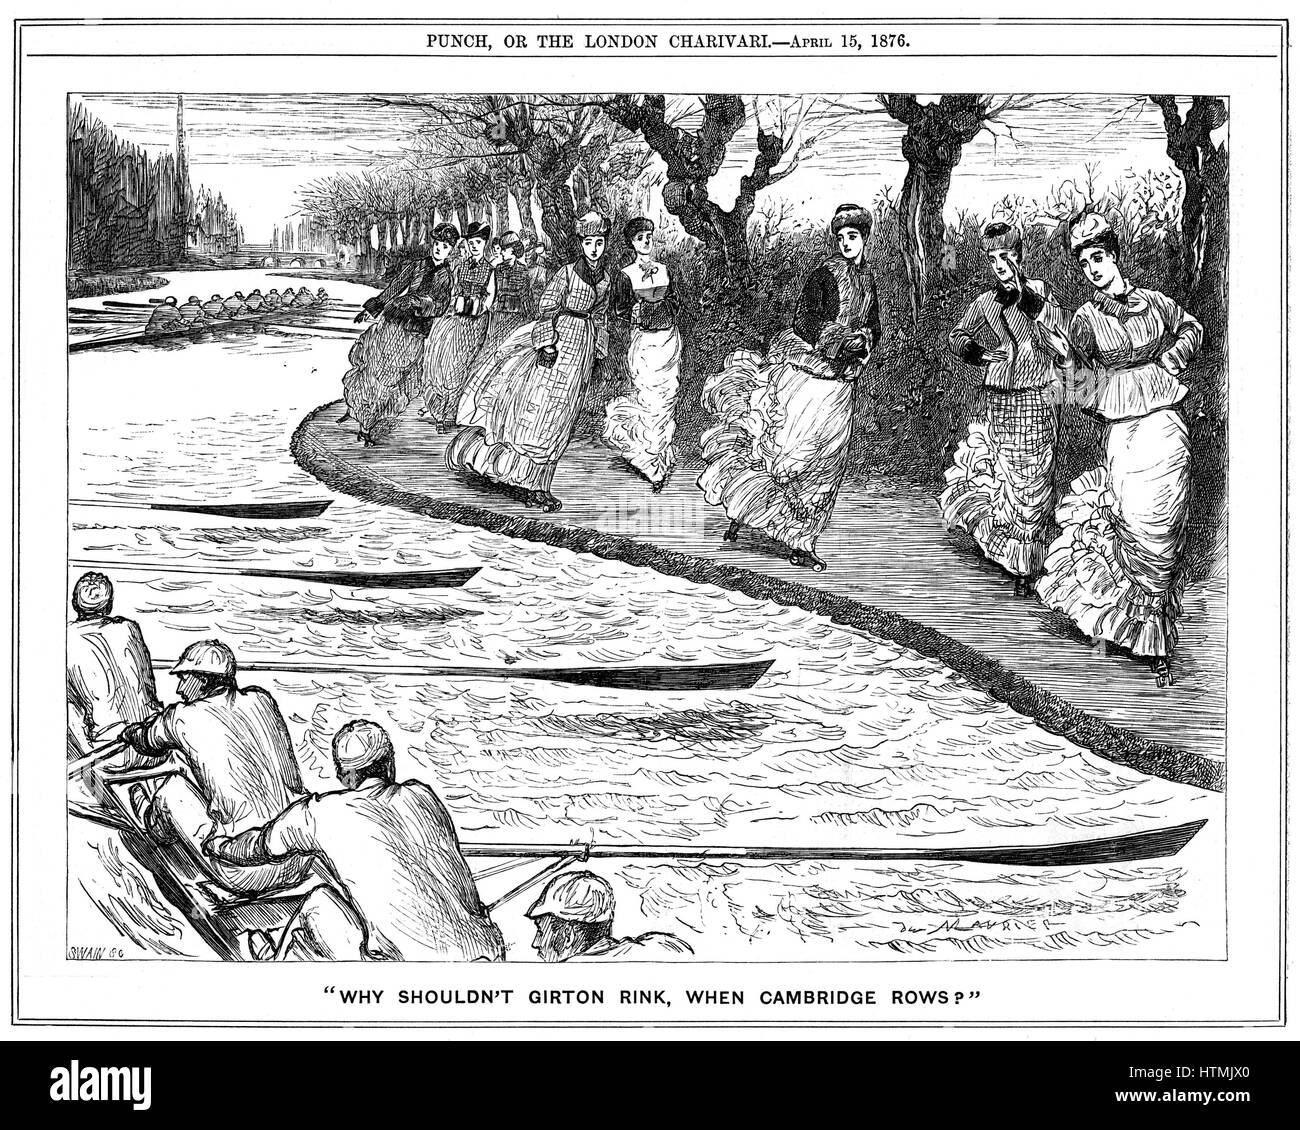 Roller skating very much in fashion. Lady students from Girton on the towpath waving to oarsmen rowing on the river. - Stock Image